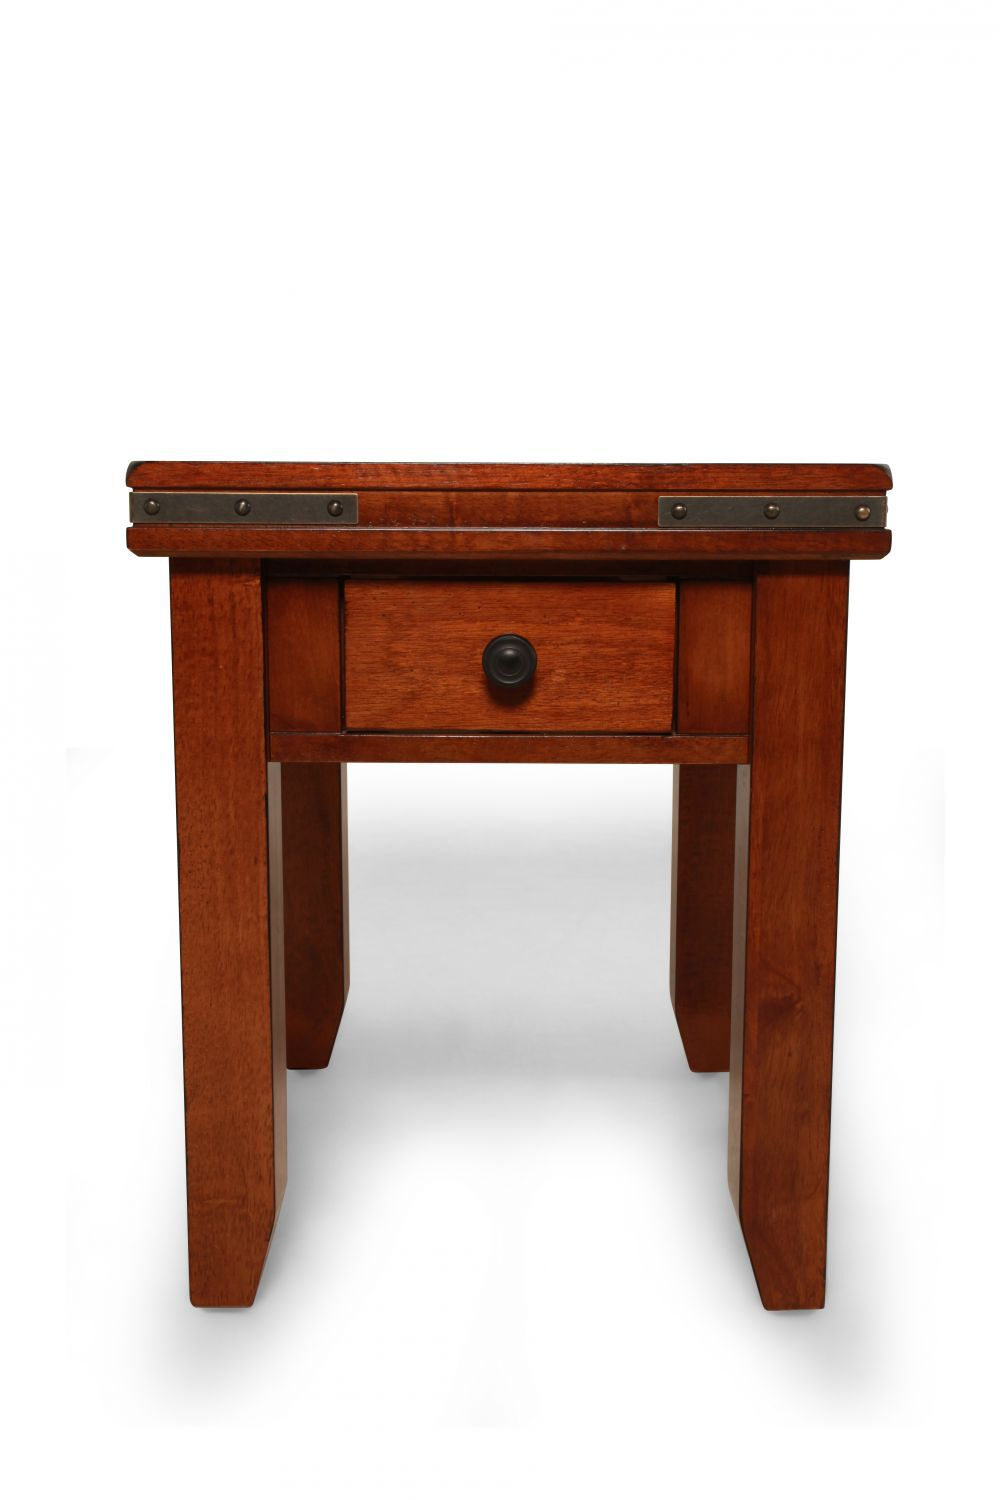 Square Traditional Mango Wood End Tableu0026nbsp;in Warm Brown